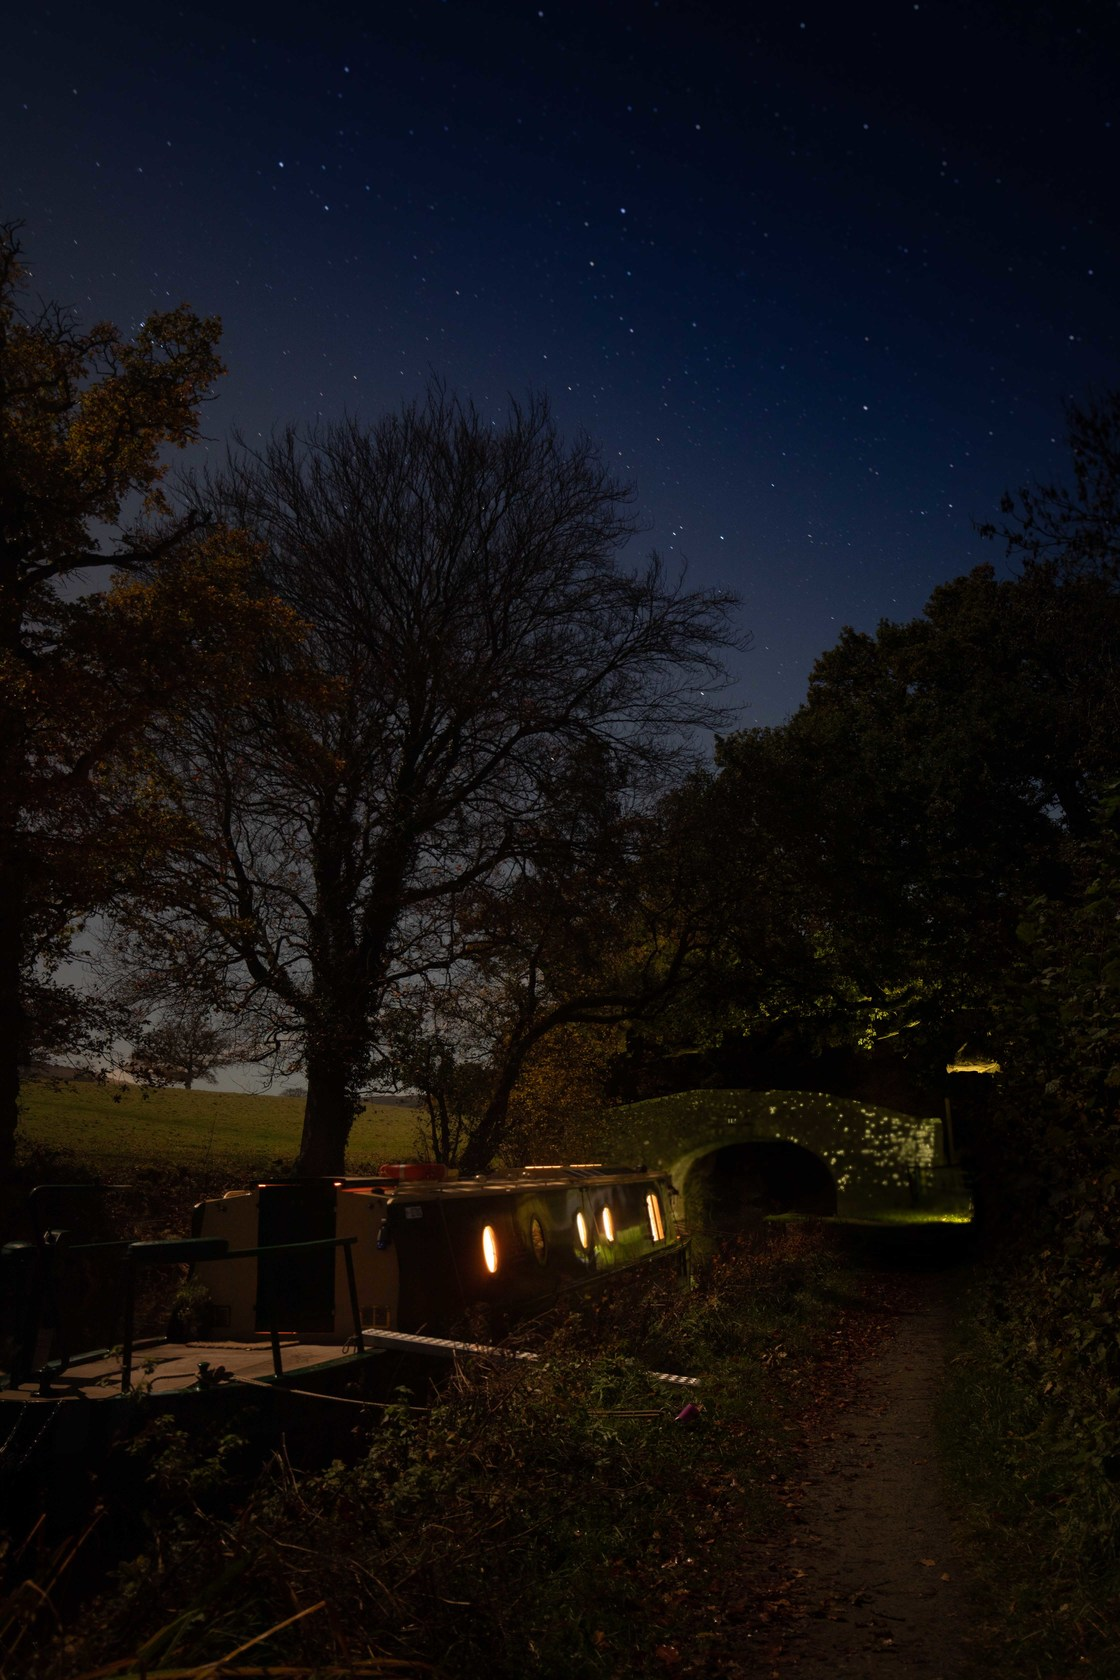 Canal boat under starry skies